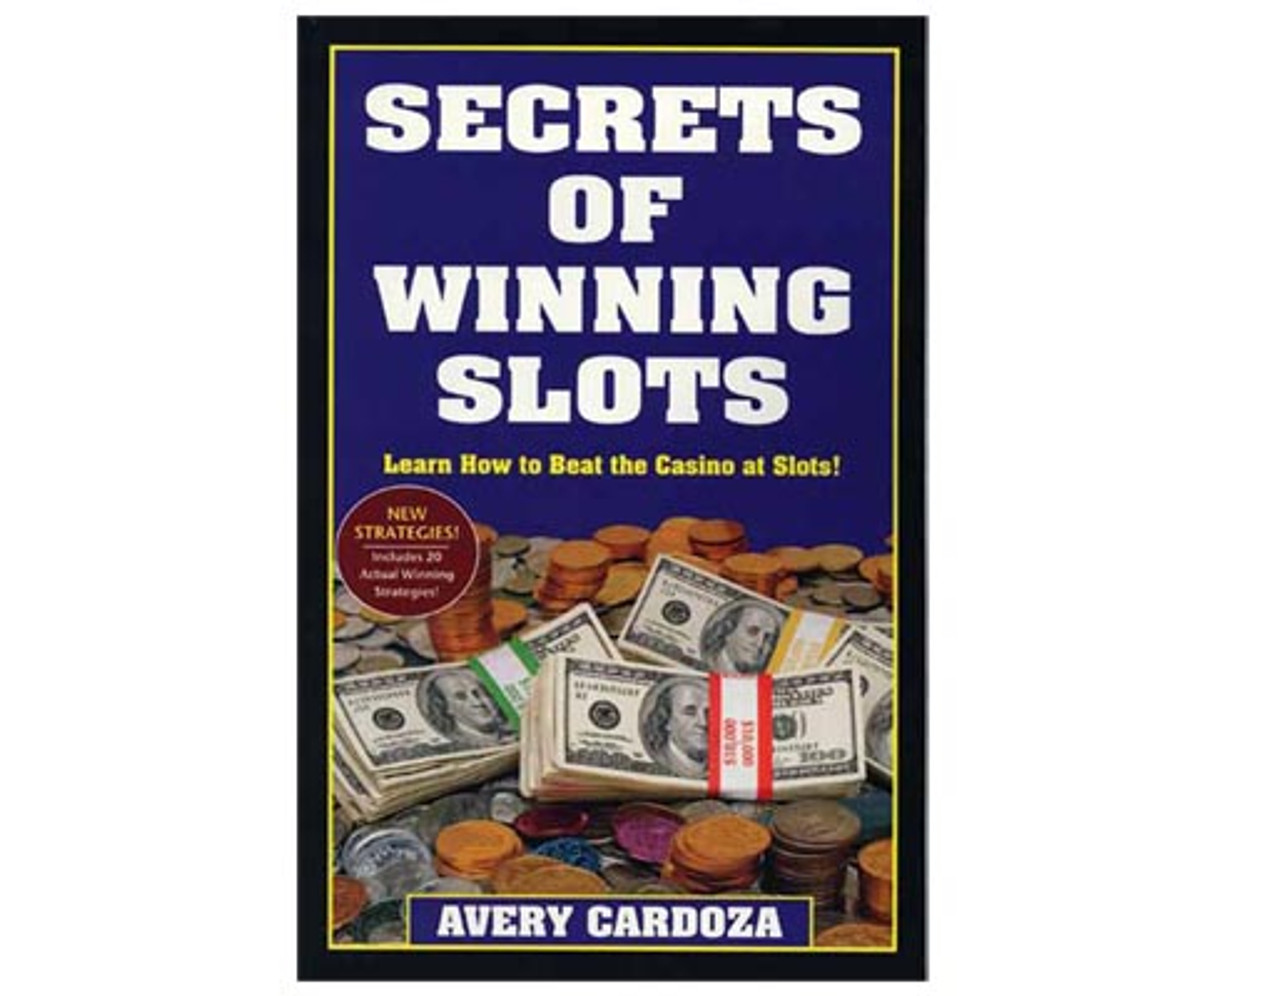 SECRETS OF WINNING SLOTS - Learn how to beat the casino at slots !